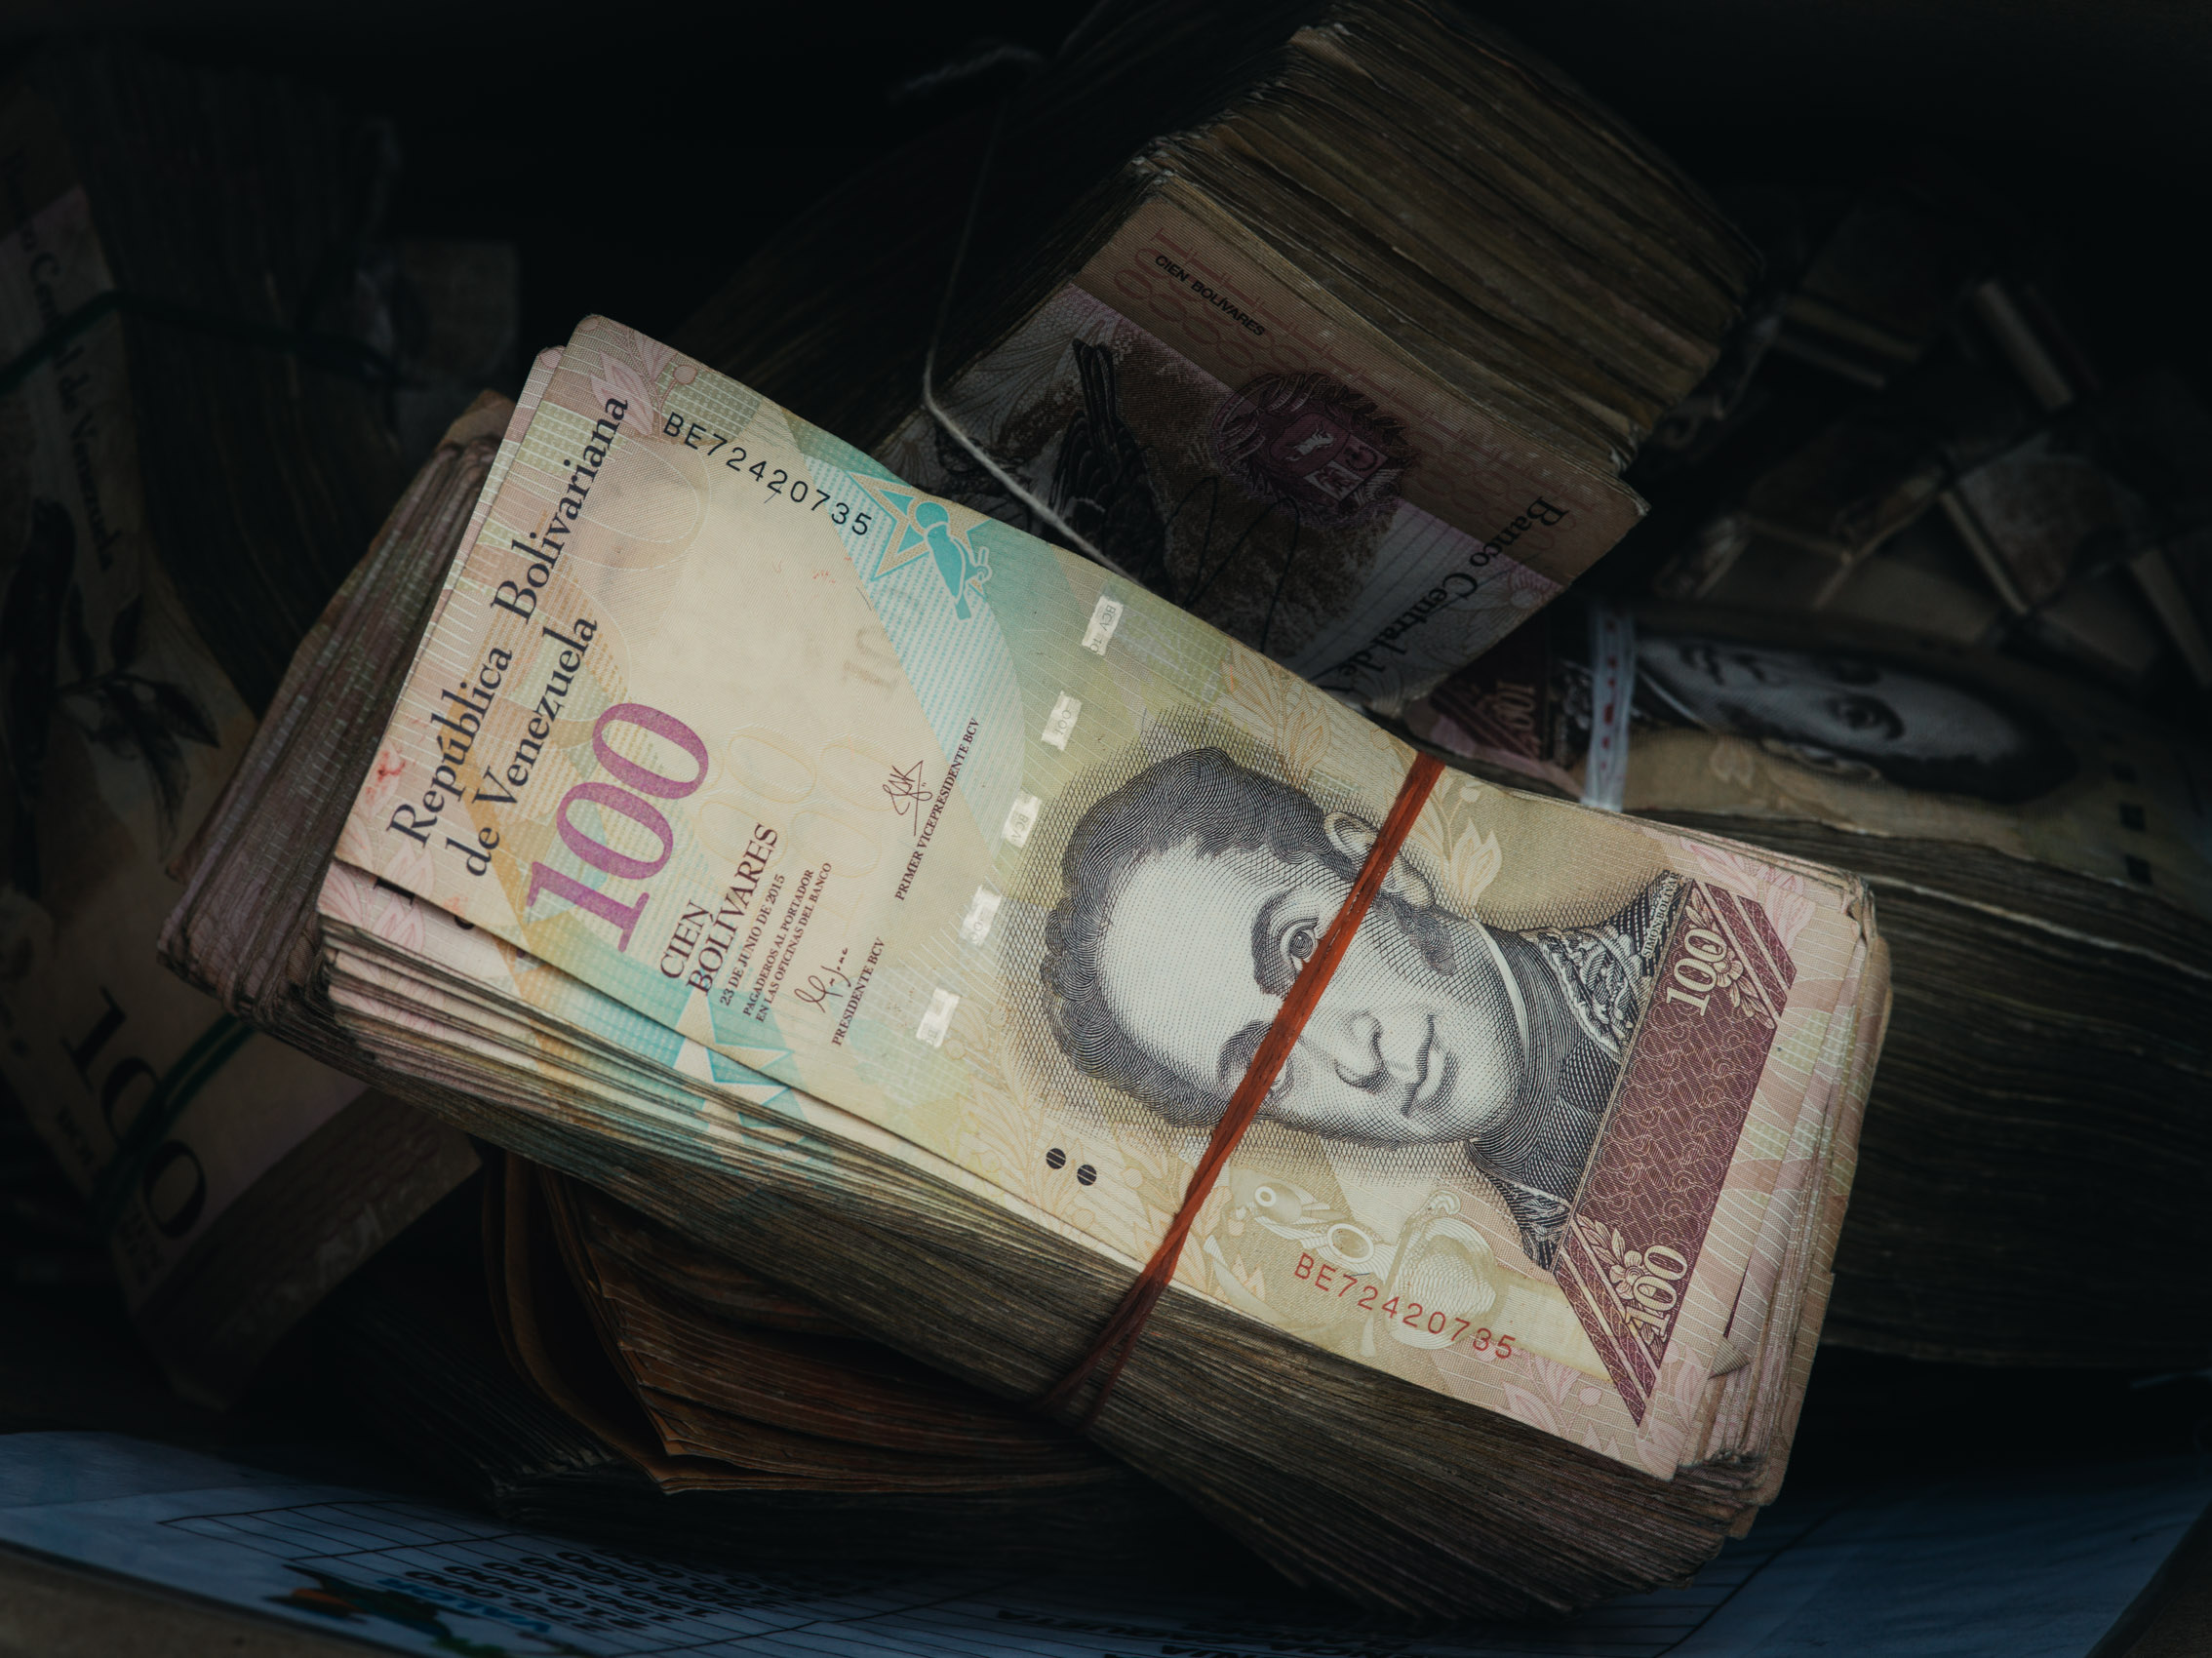 A stack of worthless Bolívares, the currency of Venezuela